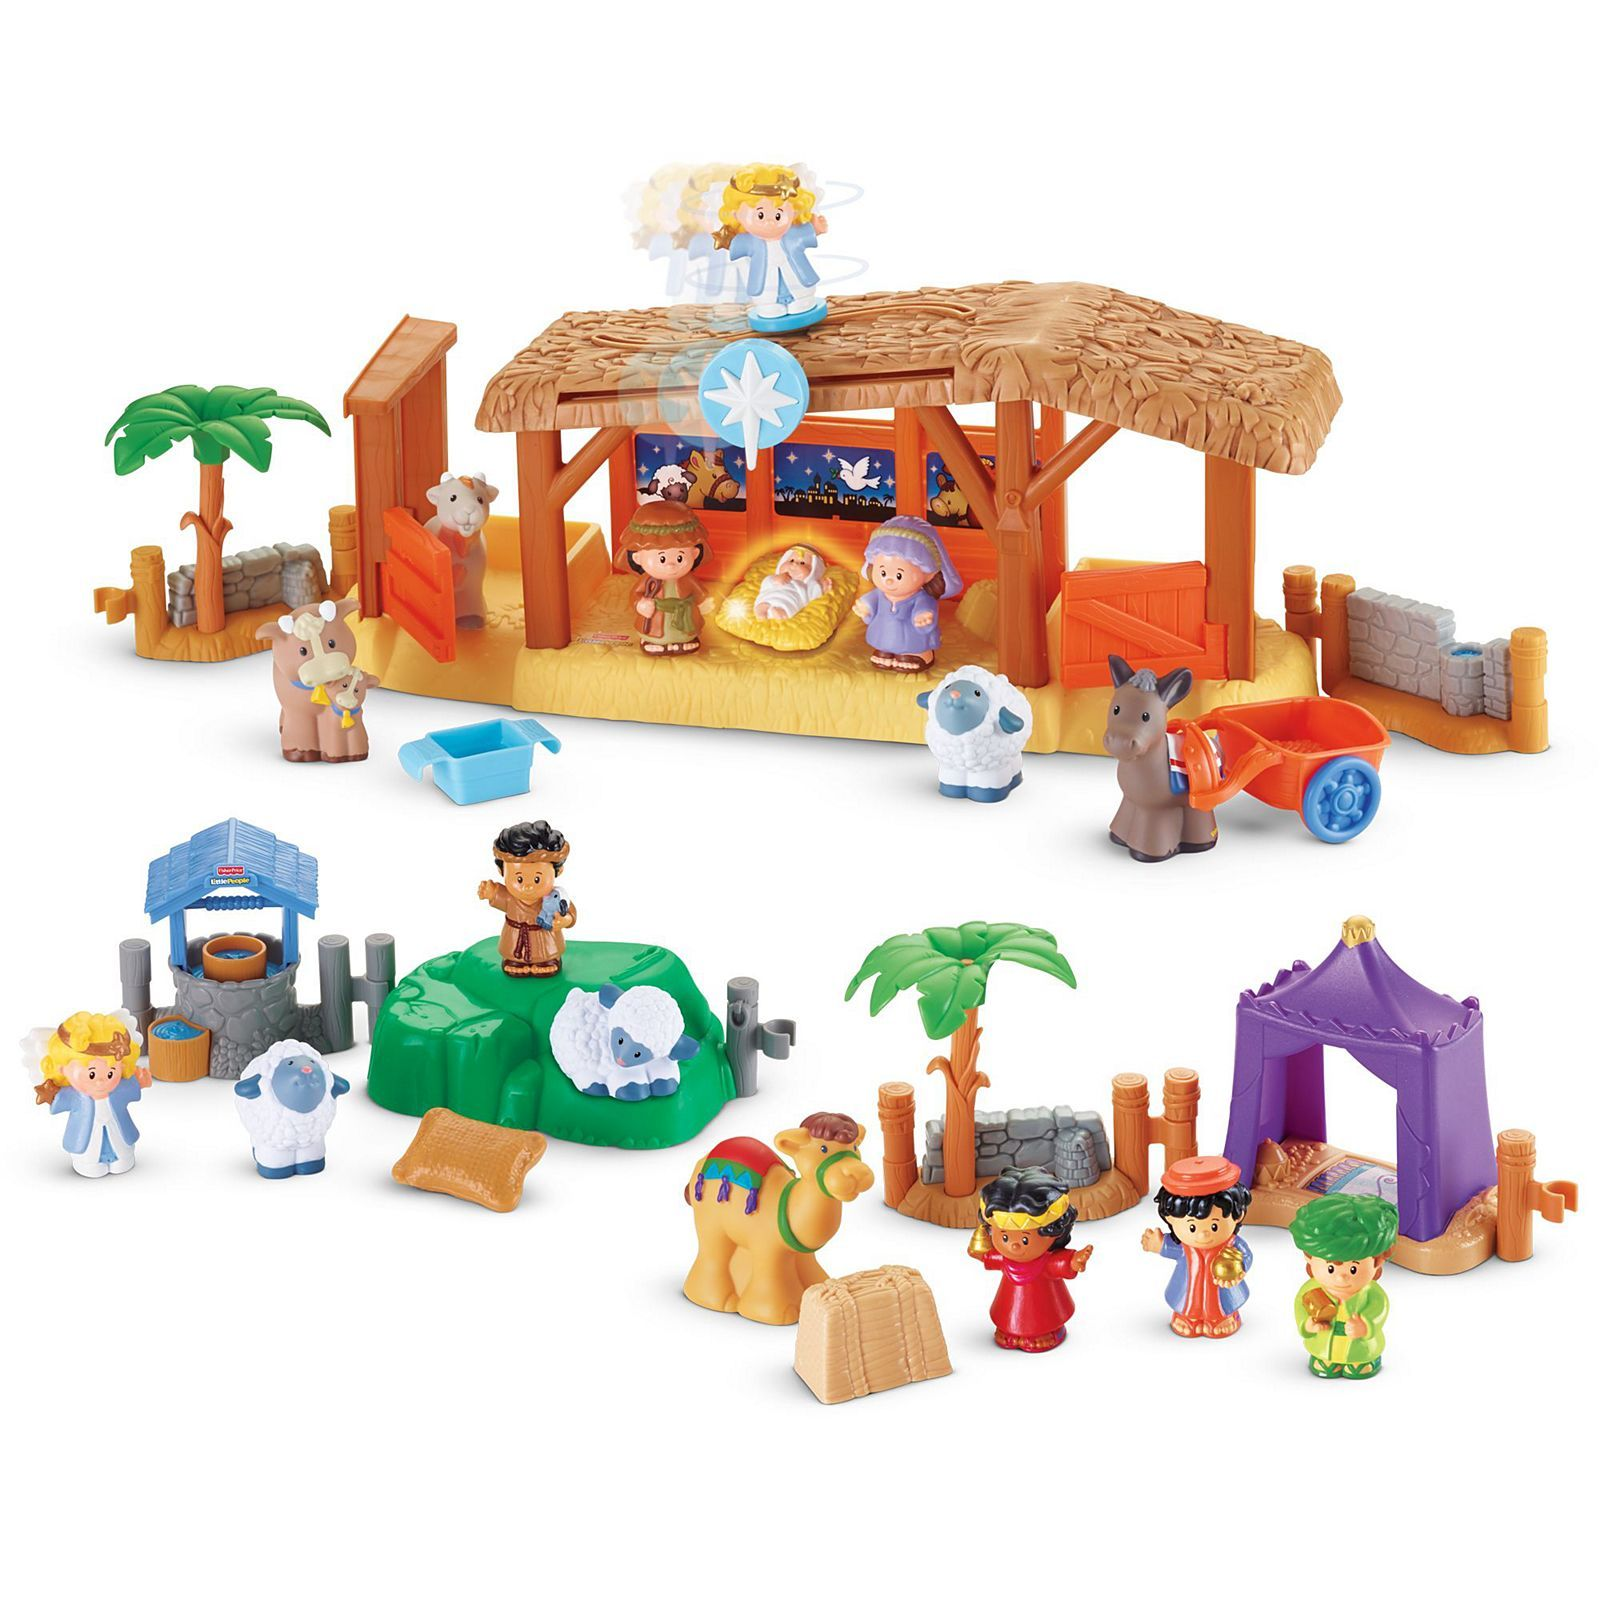 Little People Nativity Gift Set BKB40 Fisher Price